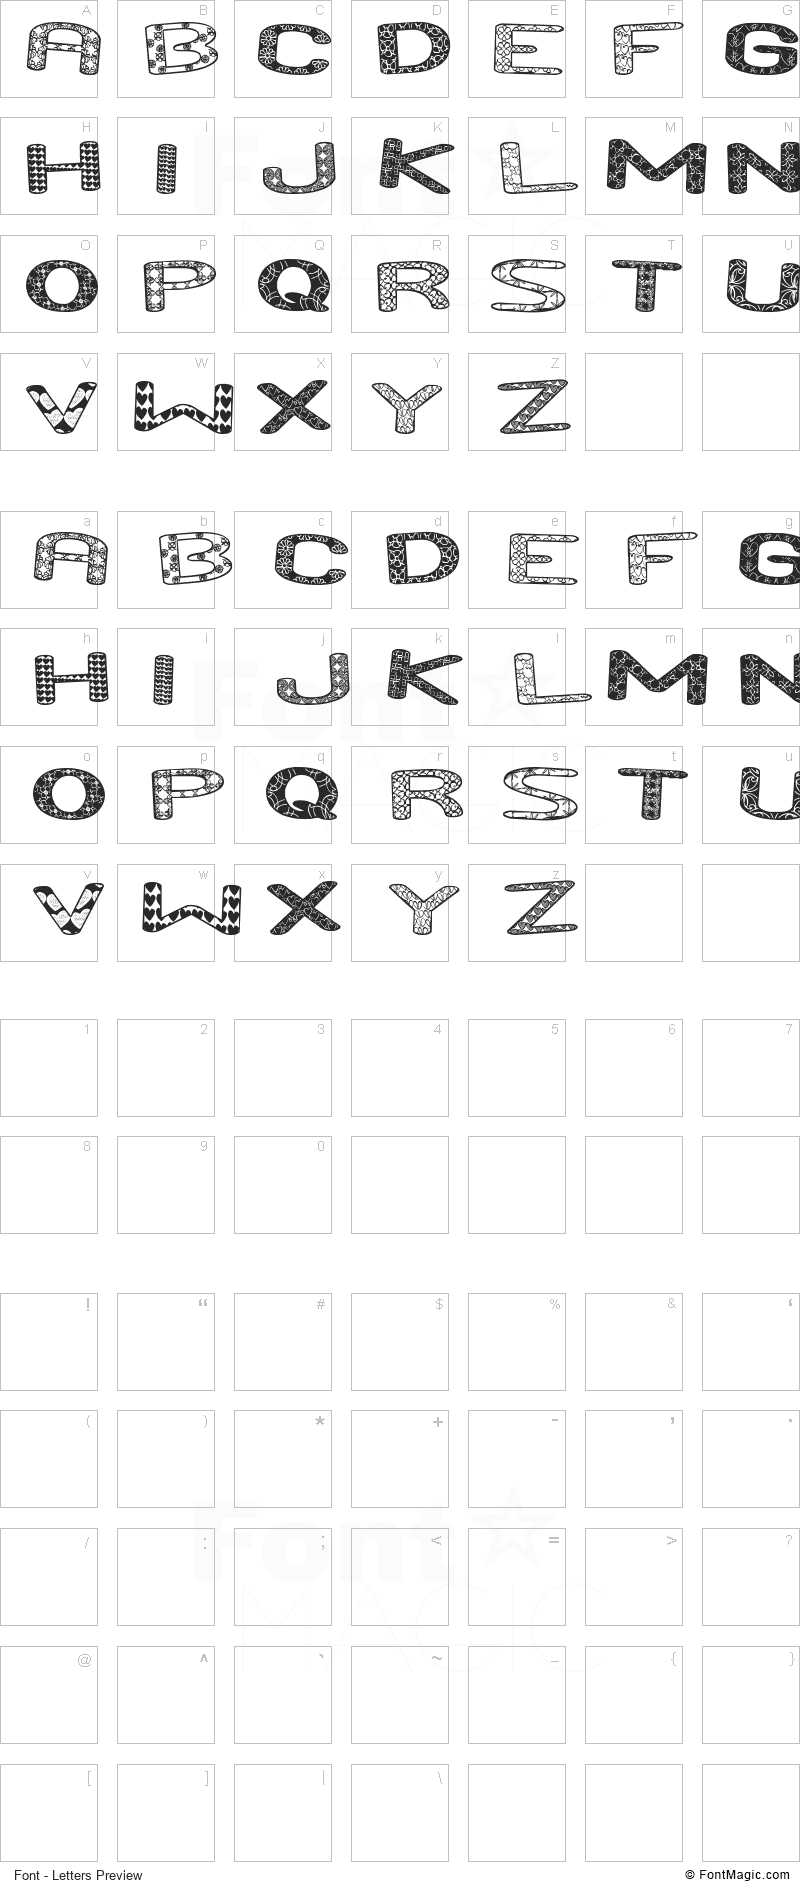 And Run ST Font - All Latters Preview Chart